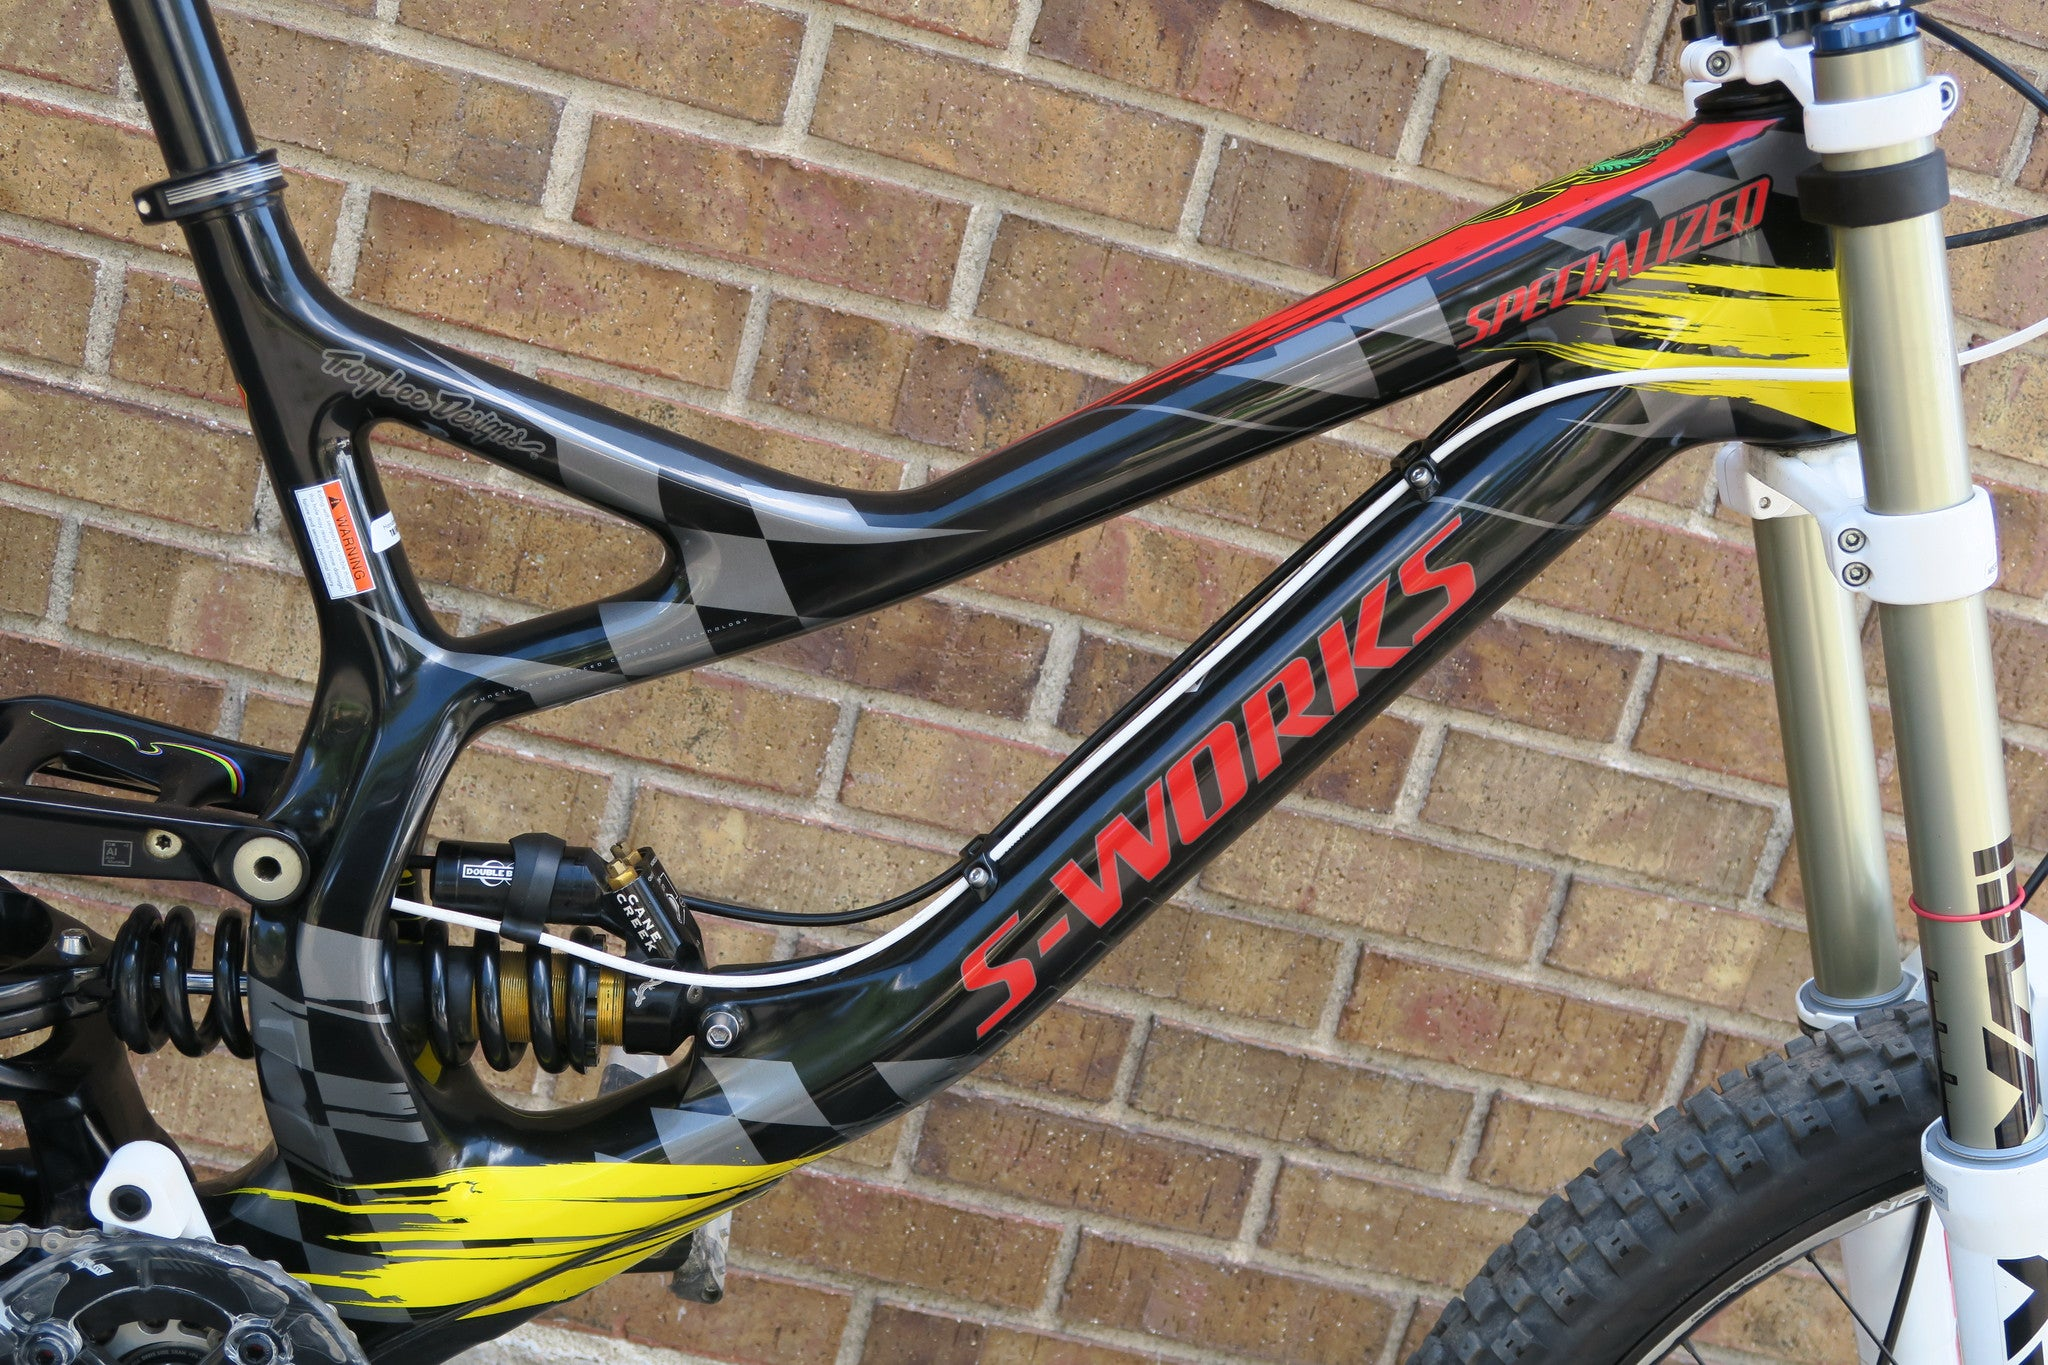 2013 S-WORKS DEMO 8 CARBON 26 TLD EDITION